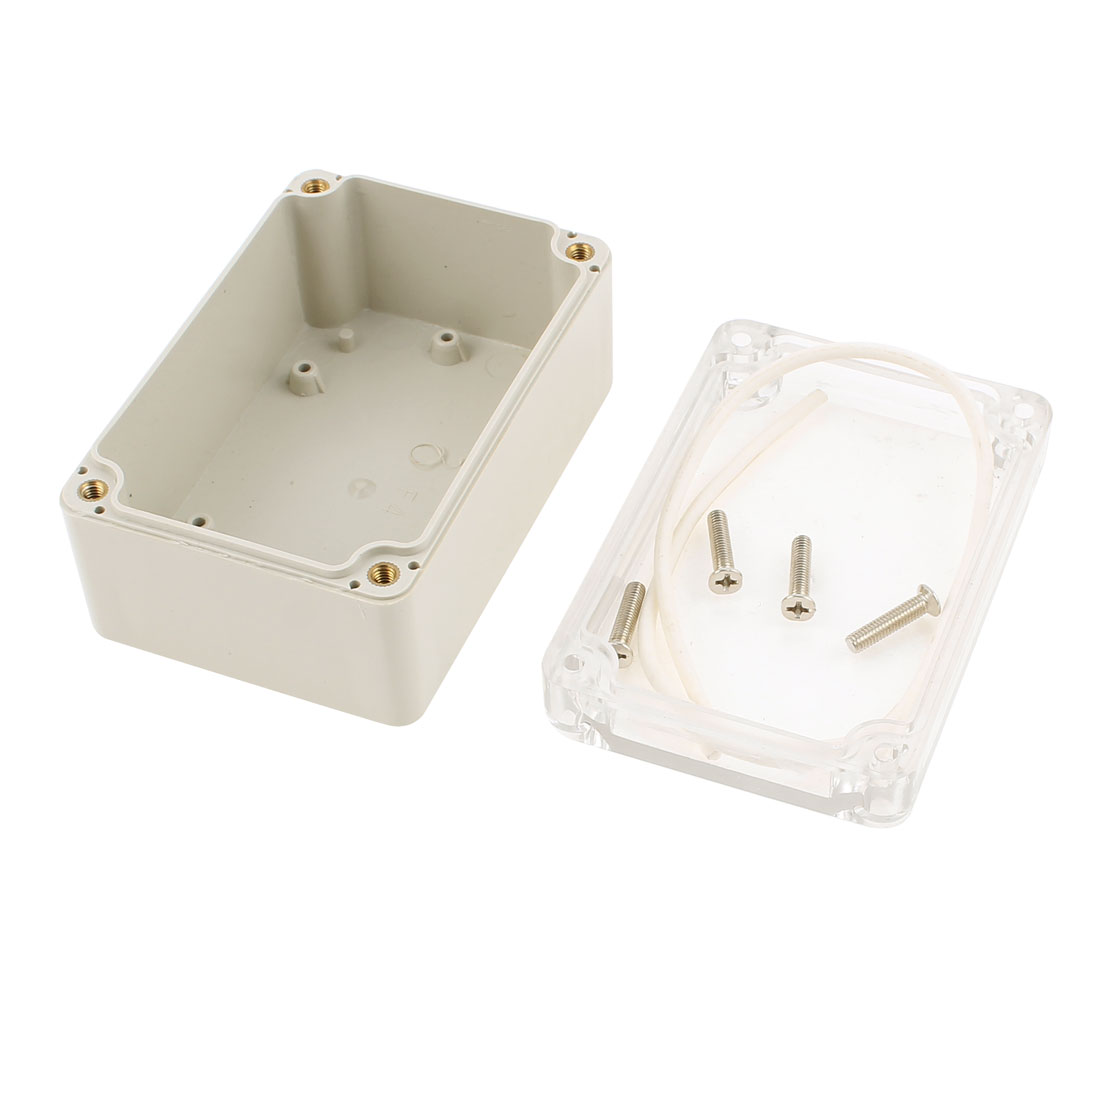 100x-68x-50mm-Waterproof-Junction-Box-DIY-Terminal-Connect-Enclosure-Clear-Cover